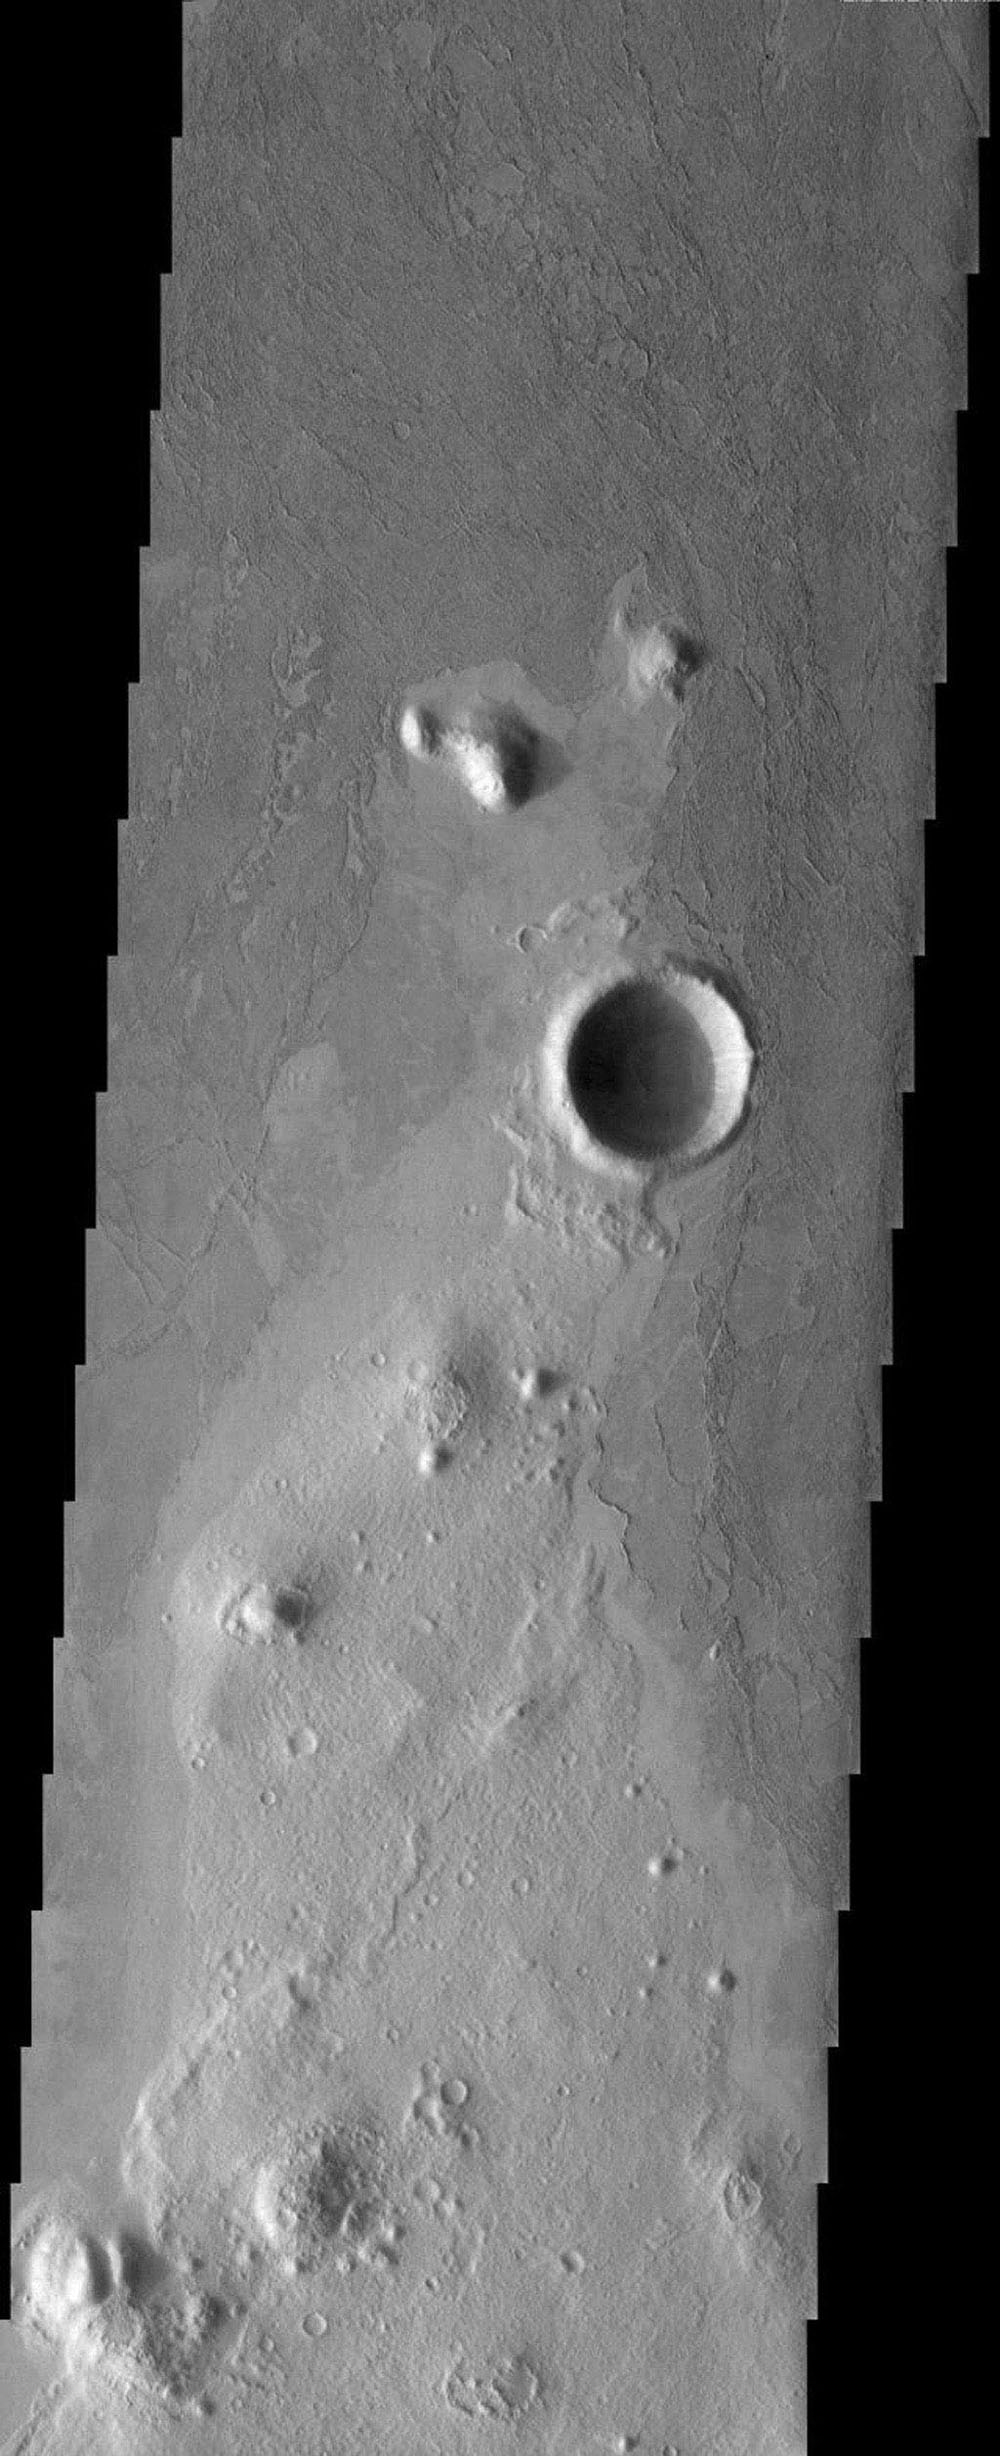 NASA's Mars Odyssey spacecraft captured this image in July 2003 of platy flows covering the plains of Southern Elysium on Mars. These flows appear to be very fluid lava flows but a mudflow origin can't be completely ruled out for these flows.